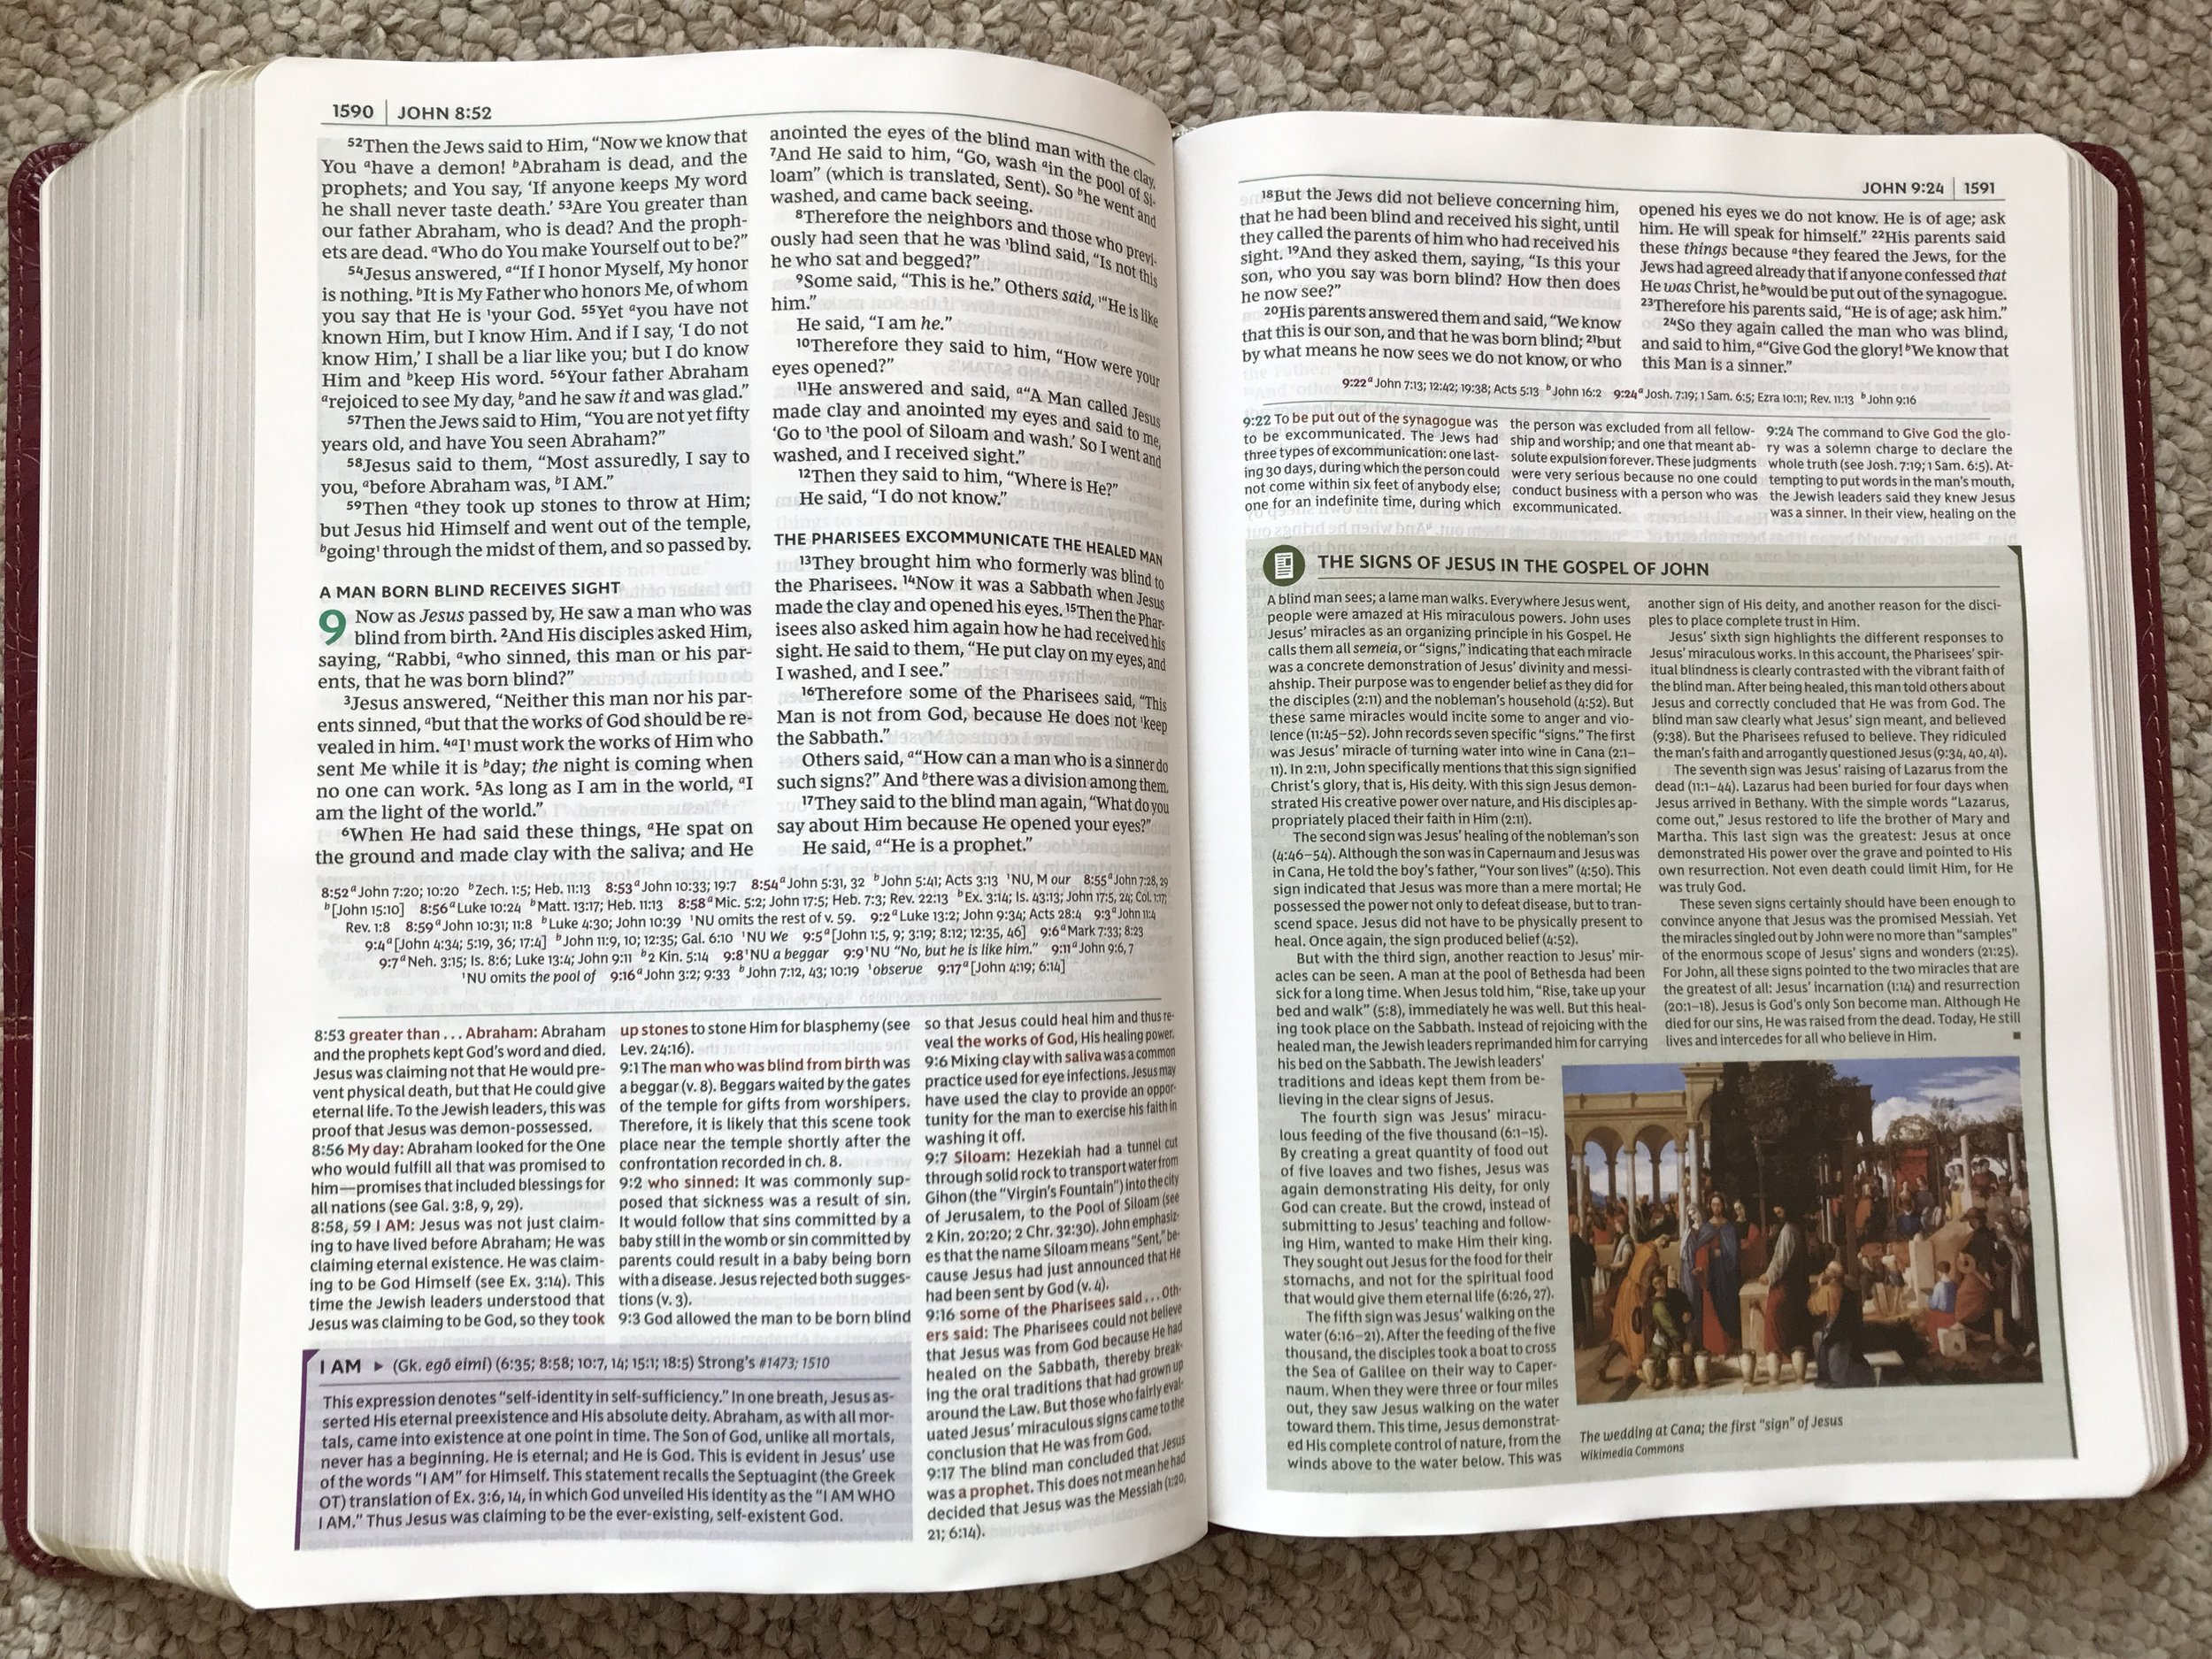 The NKJV Study Bible is chock-full of word studies and insights into ancient culture.